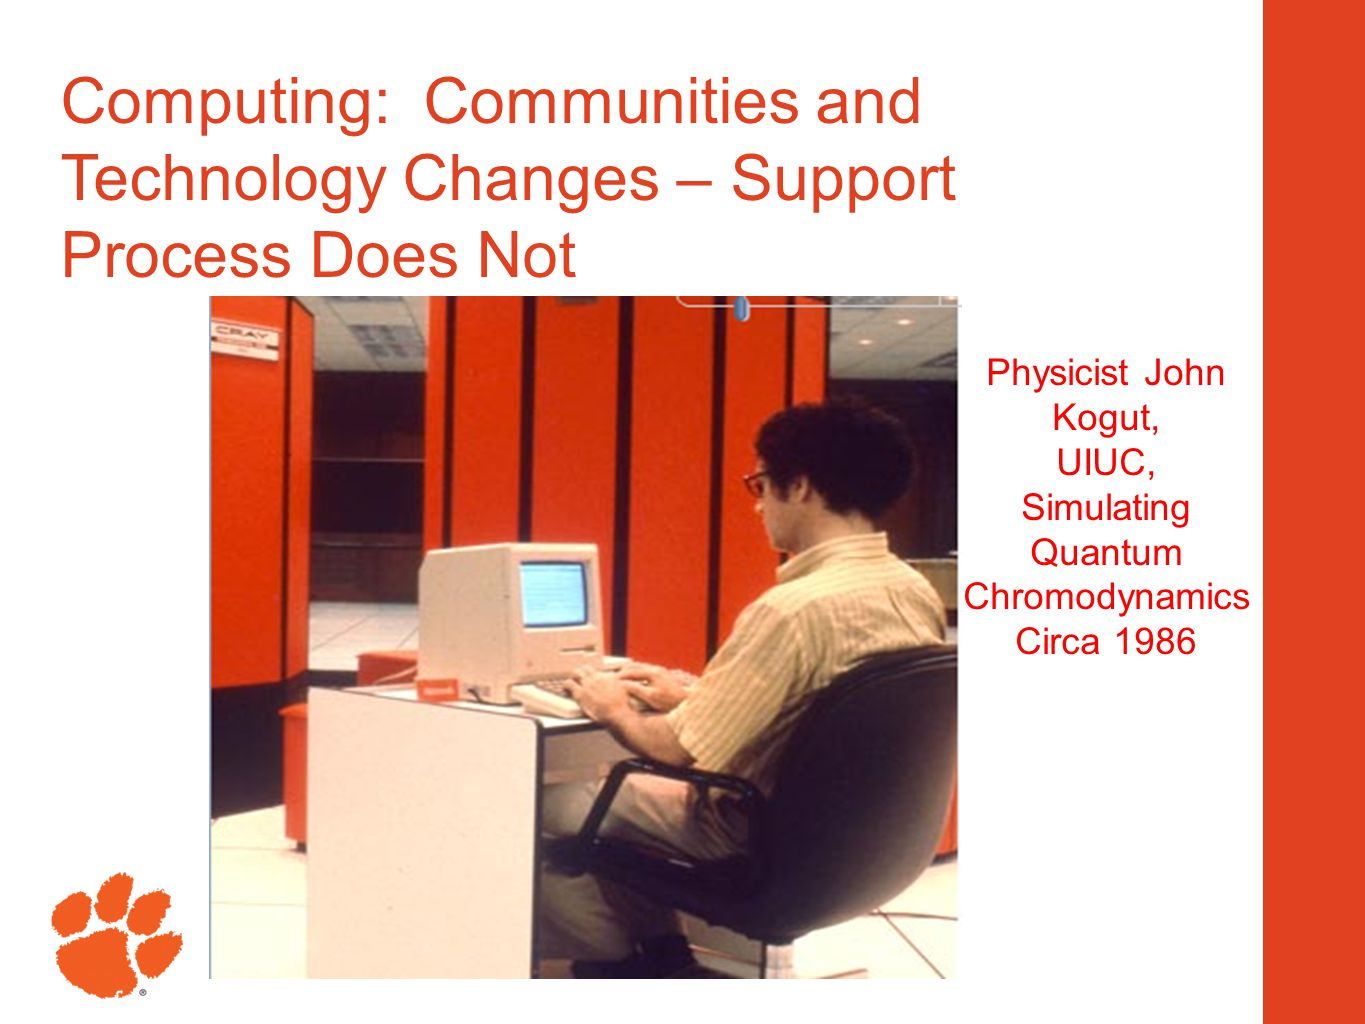 12 Physicist John Kogut, UIUC, Simulating Quantum Chromodynamics Circa 1986 Computing: Communities and Technology Changes – Support Process Does Not